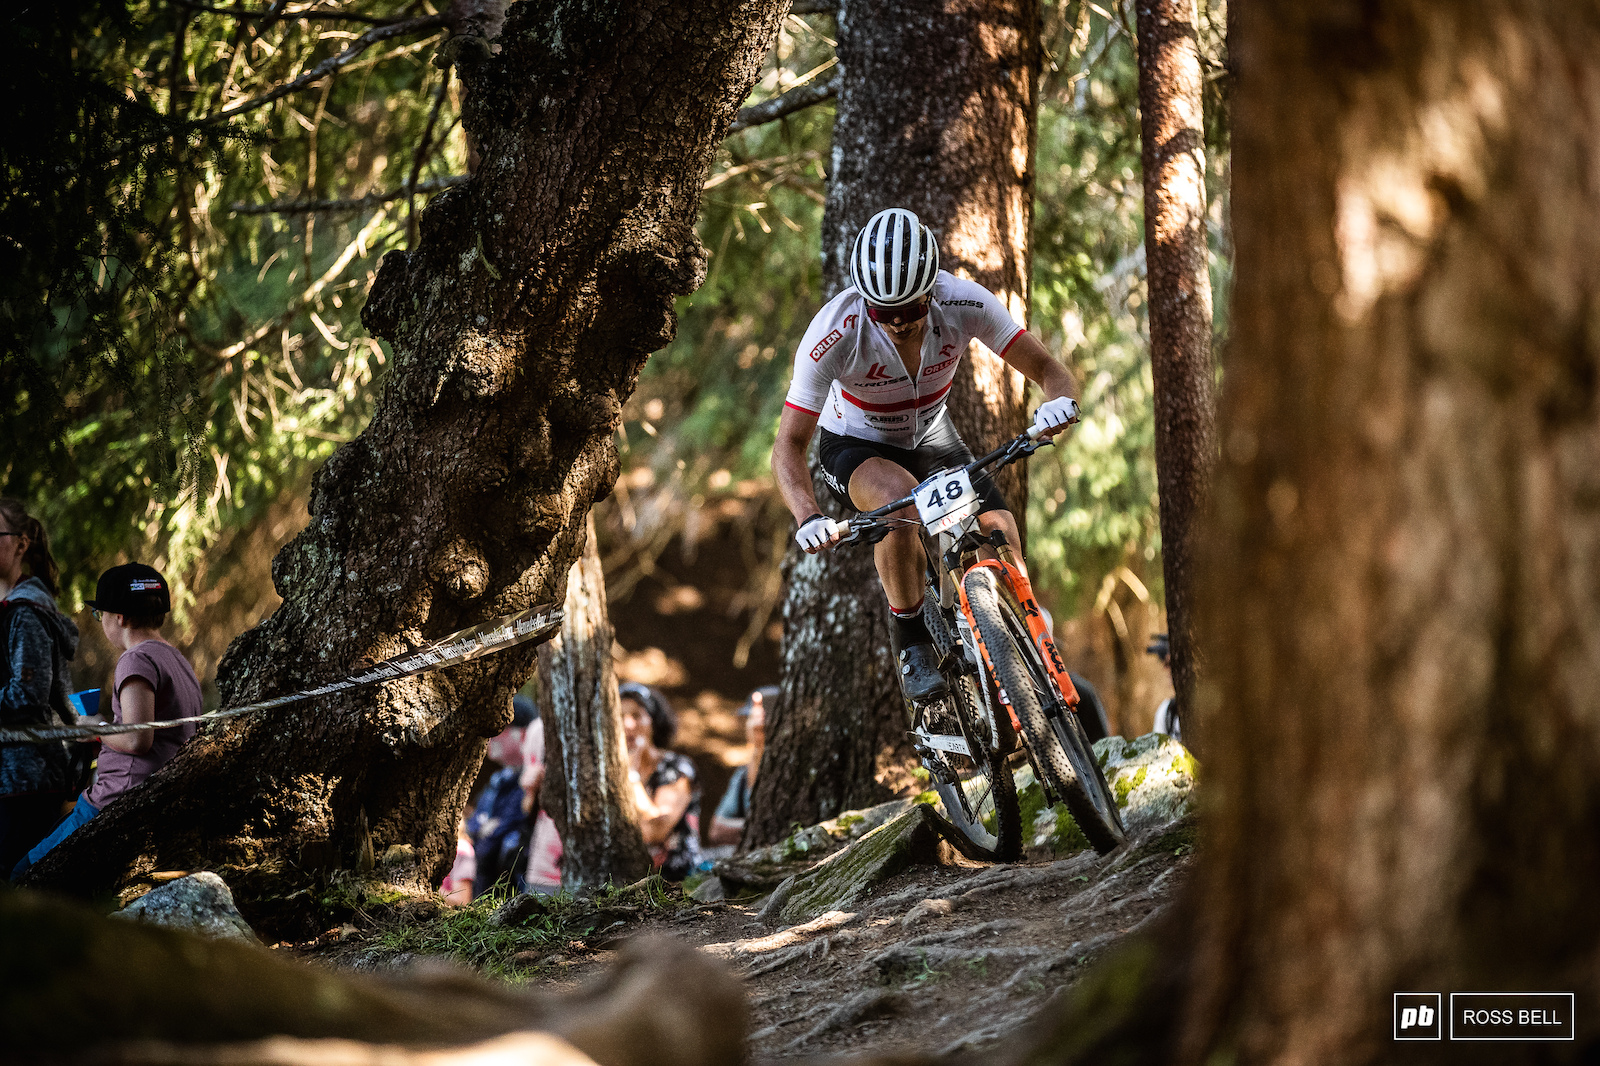 Bartlomiej Wawak cutting through the trees on the far ned of the course.